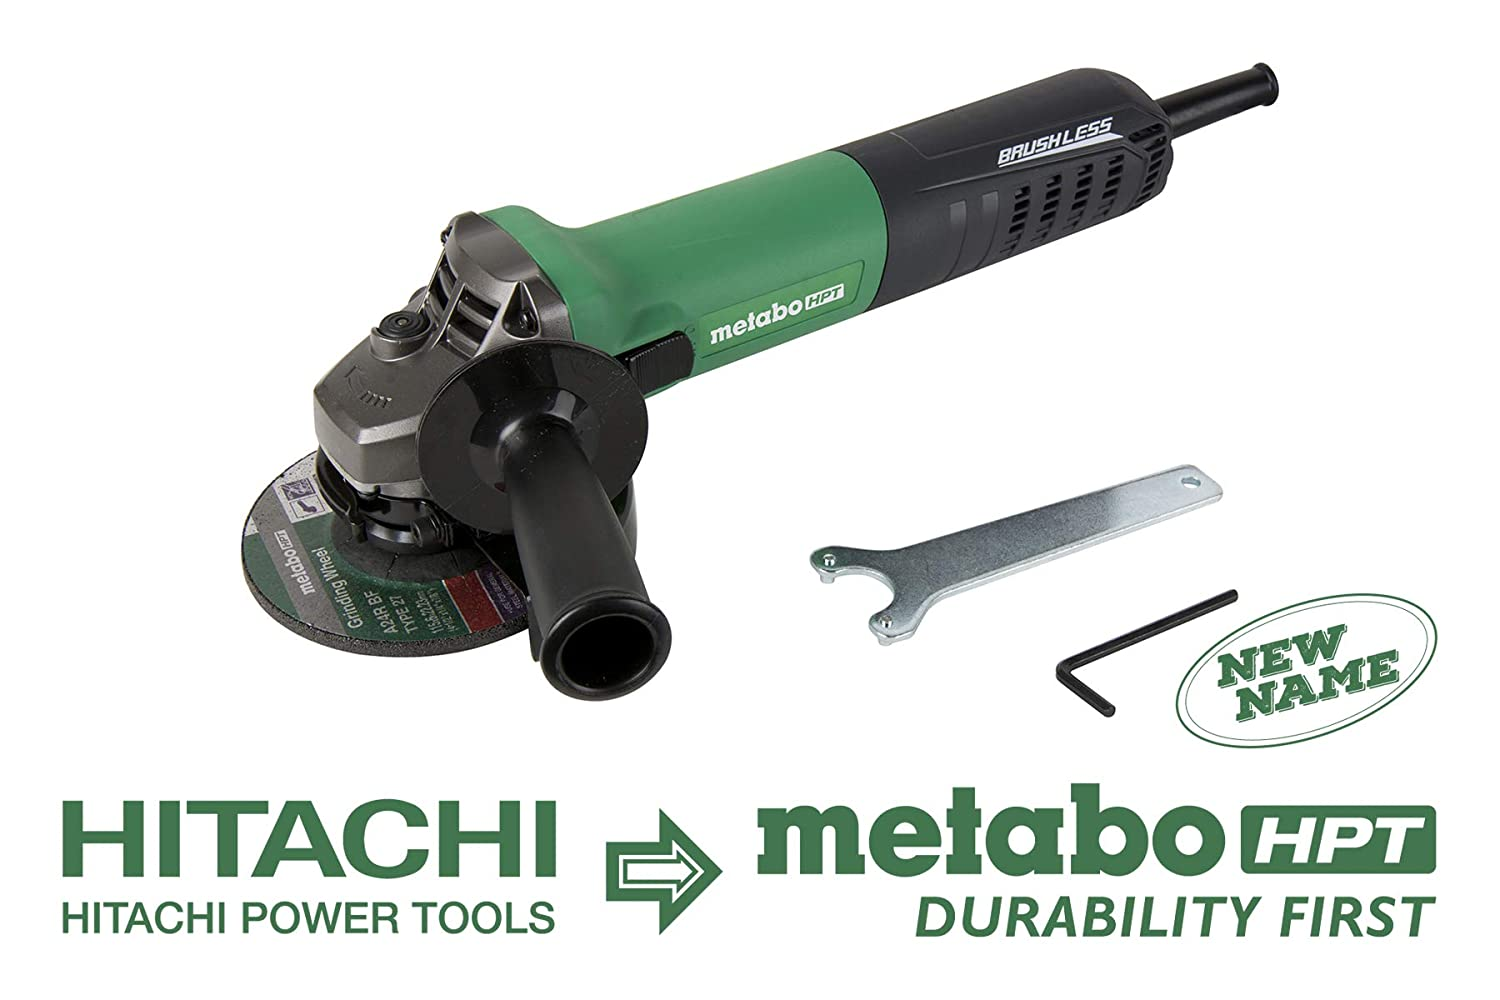 Metabo HPT G12VE AC Brushless 4-1 2 Angle Grinder, Variable Speed, 12-Amp Motor, 2, 800-10, 000 Rpm, 1, 300W, Slide Switch W Trigger Lock-On, Electronic Overload Protection, 1-Year Warranty